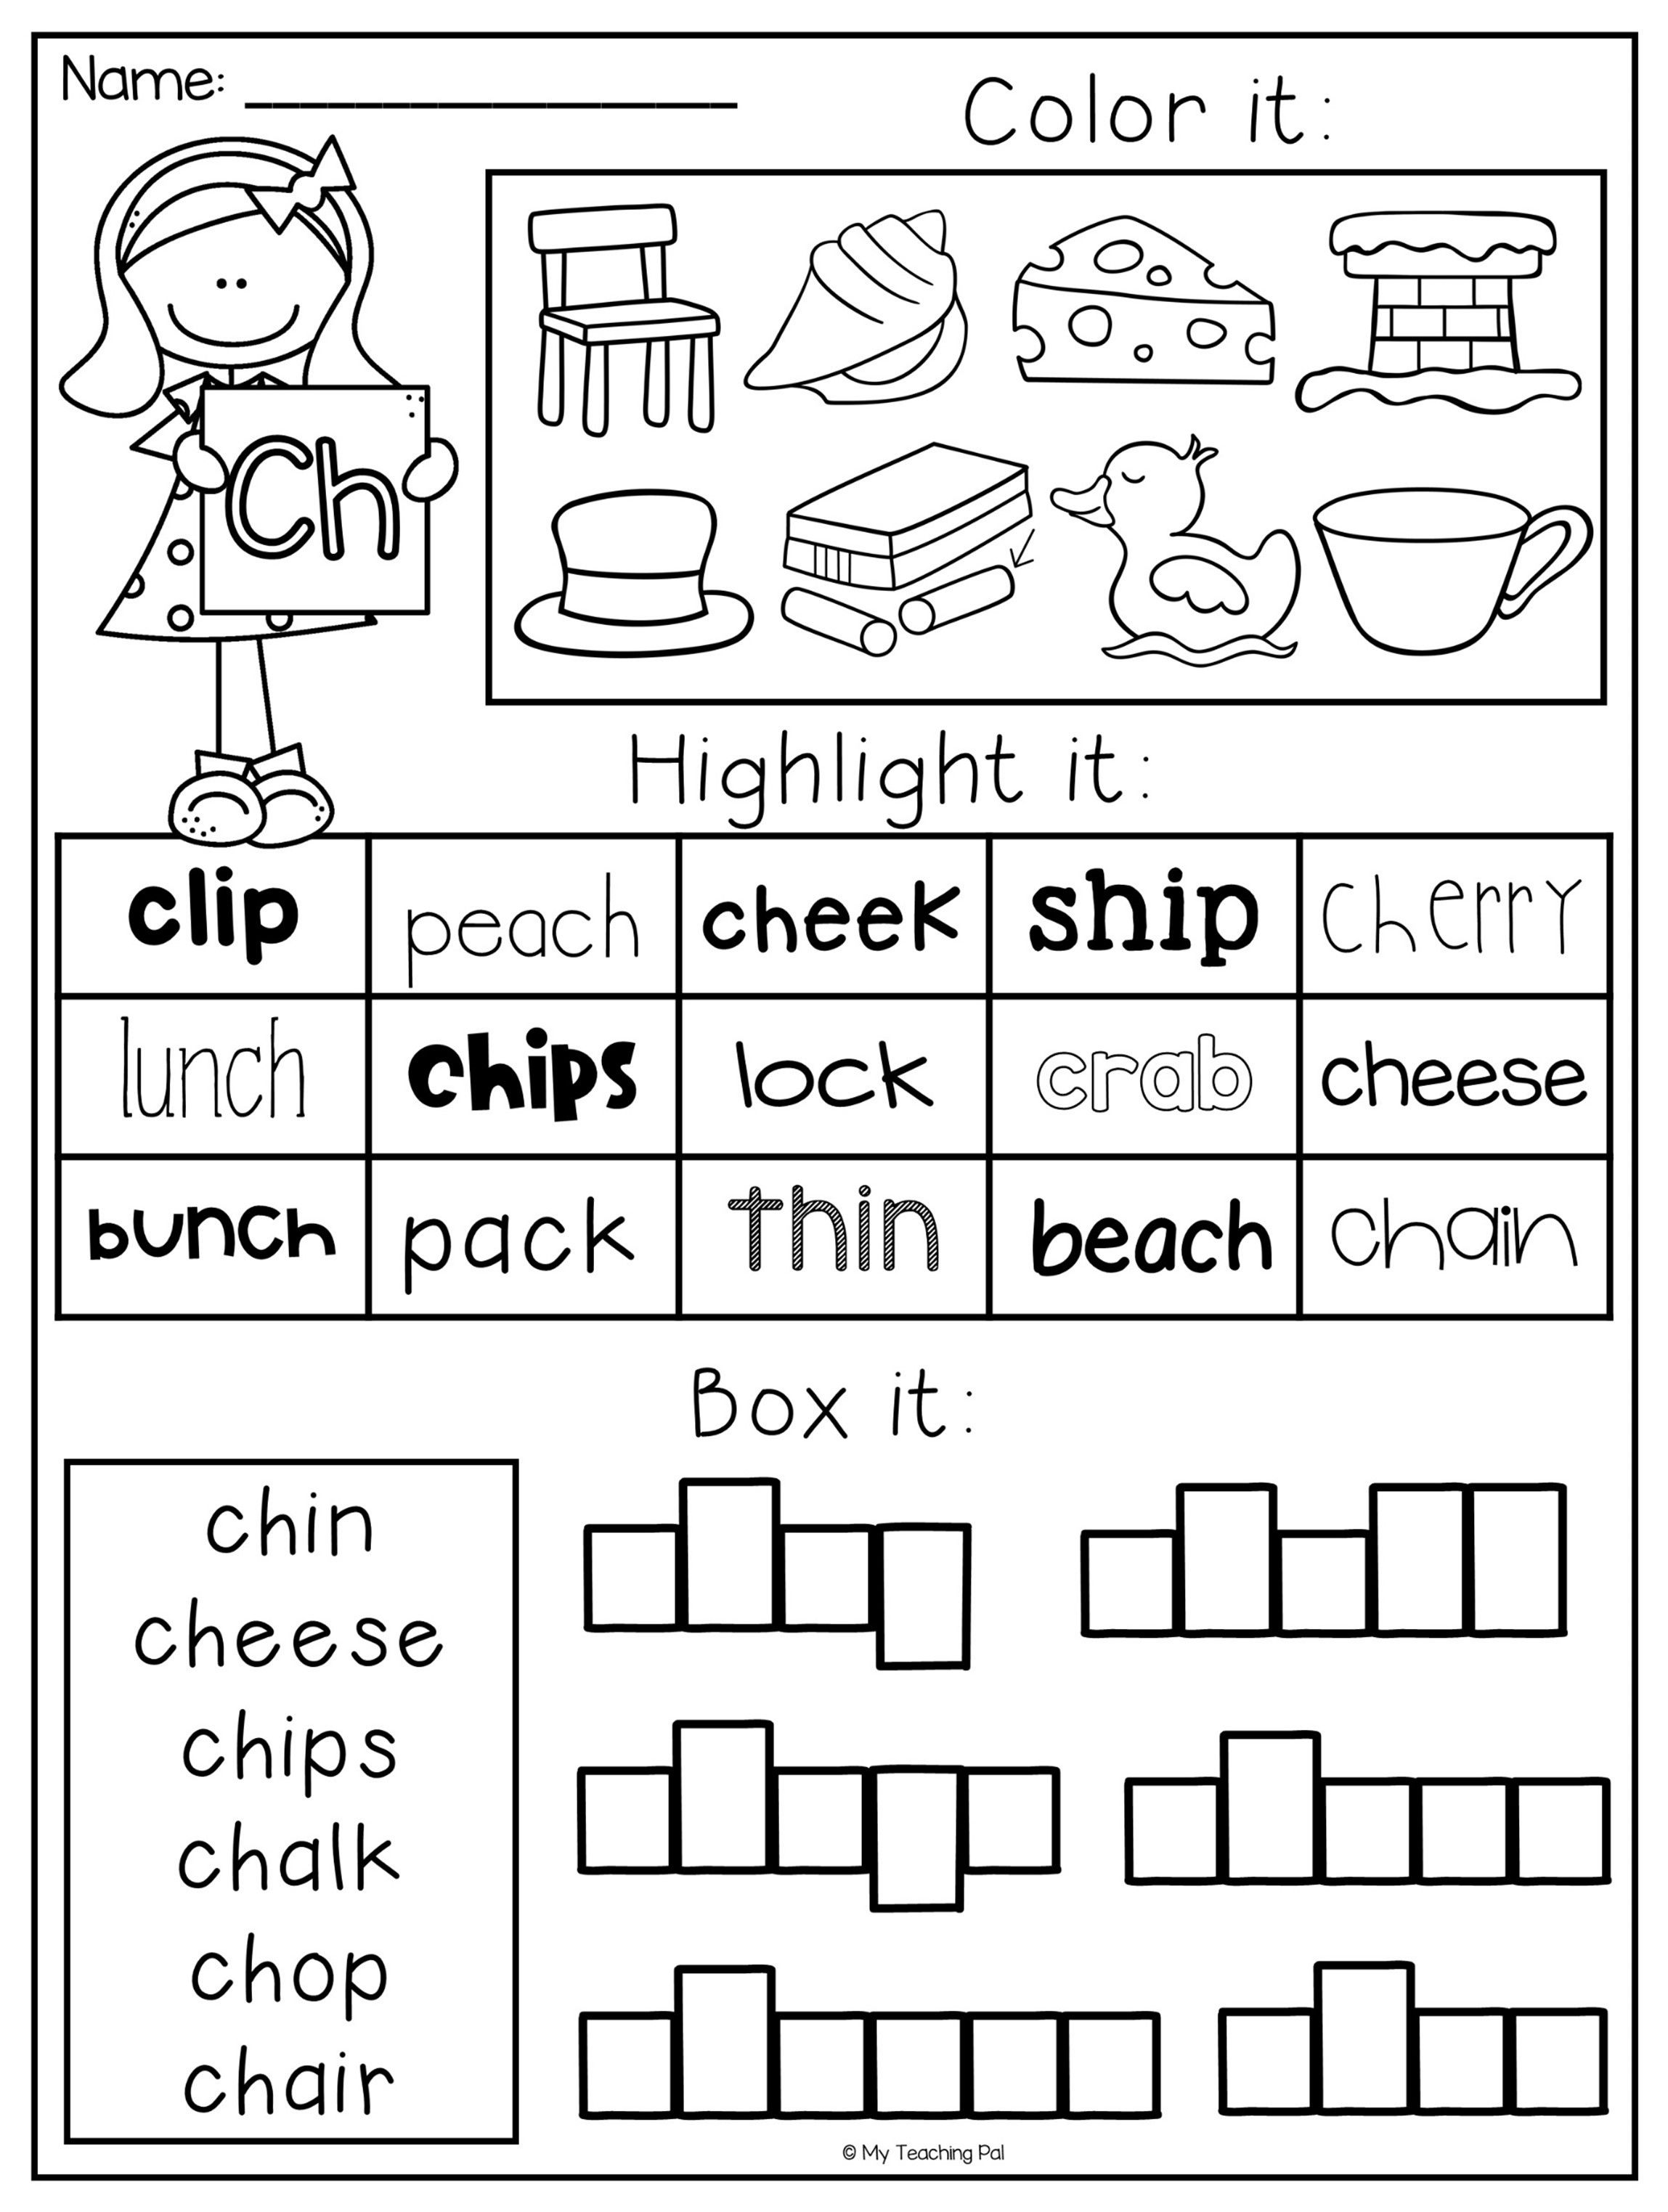 Digraph Worksheet Packet - Ch, Sh, Th, Wh, Ph (With images ...